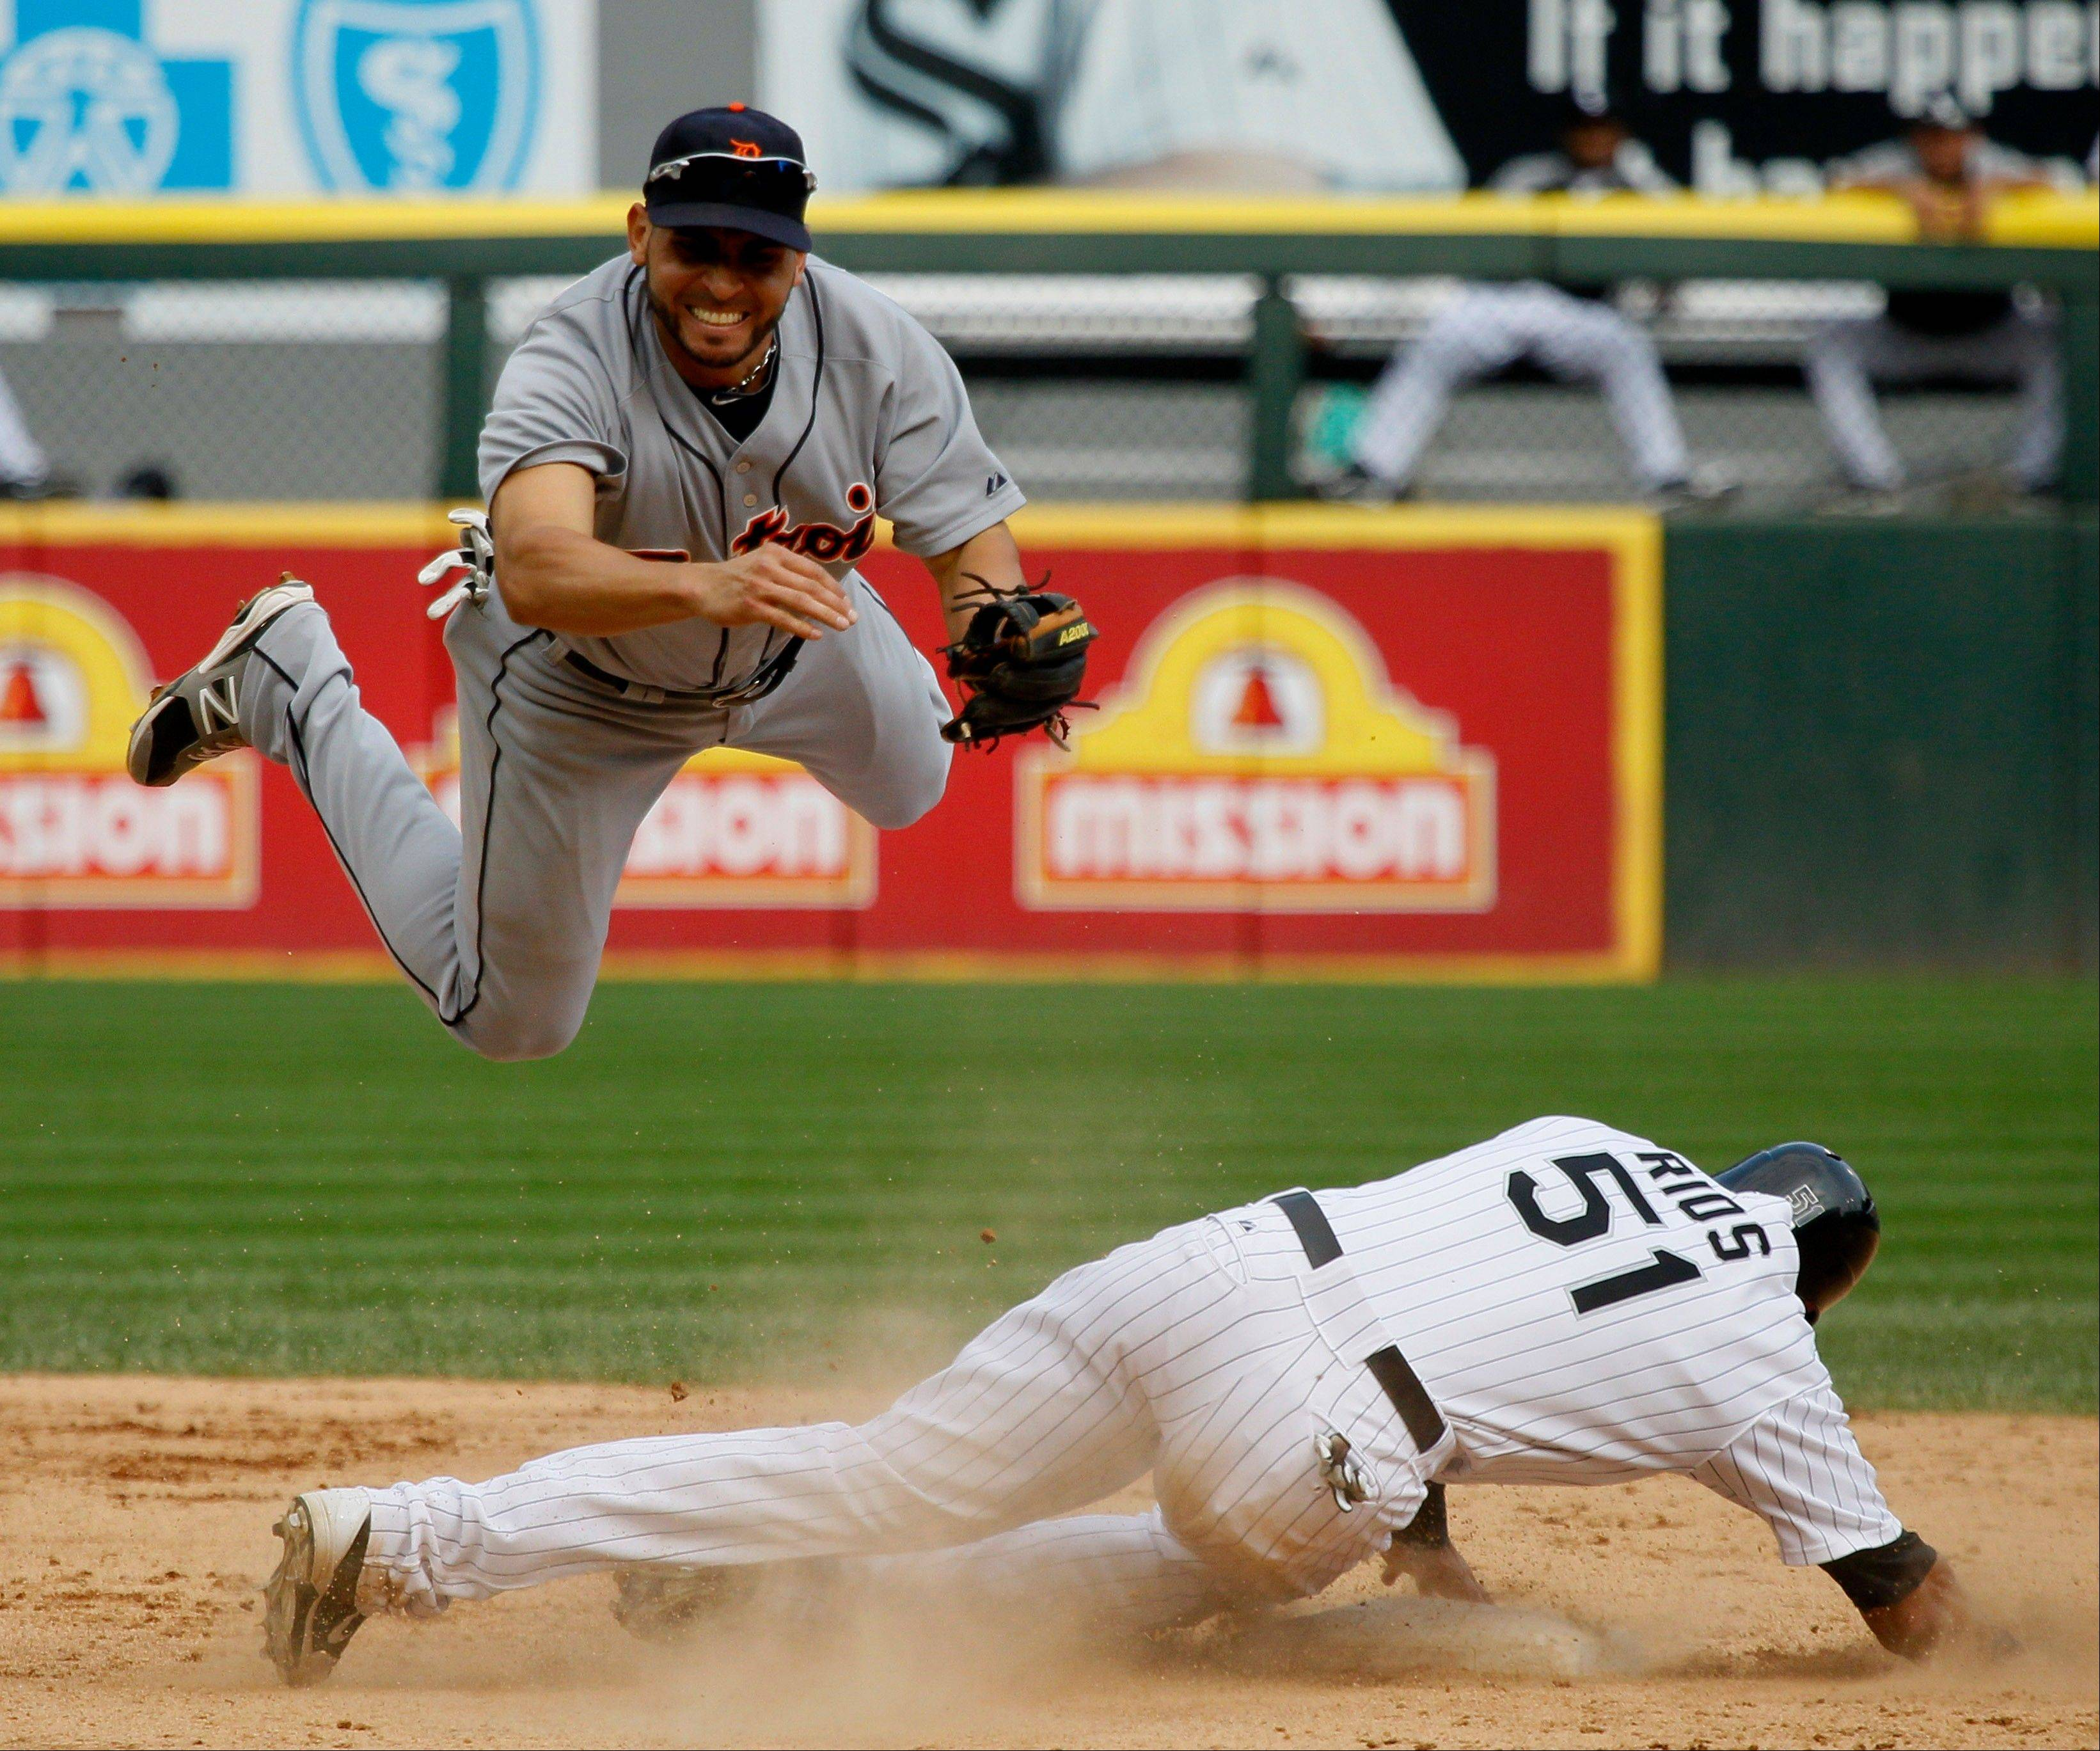 Detroit Tigers second baseman Omar Infante tries to complete the double play forcing White Sox outfielder Alex Rios out at second during Monday's fifth inning at U.S. Cellular Field. Rios foiled the double play, allowing Adam Dunn and Paul Konerko to score off a fielders choice hit by Dayan Viciedo.